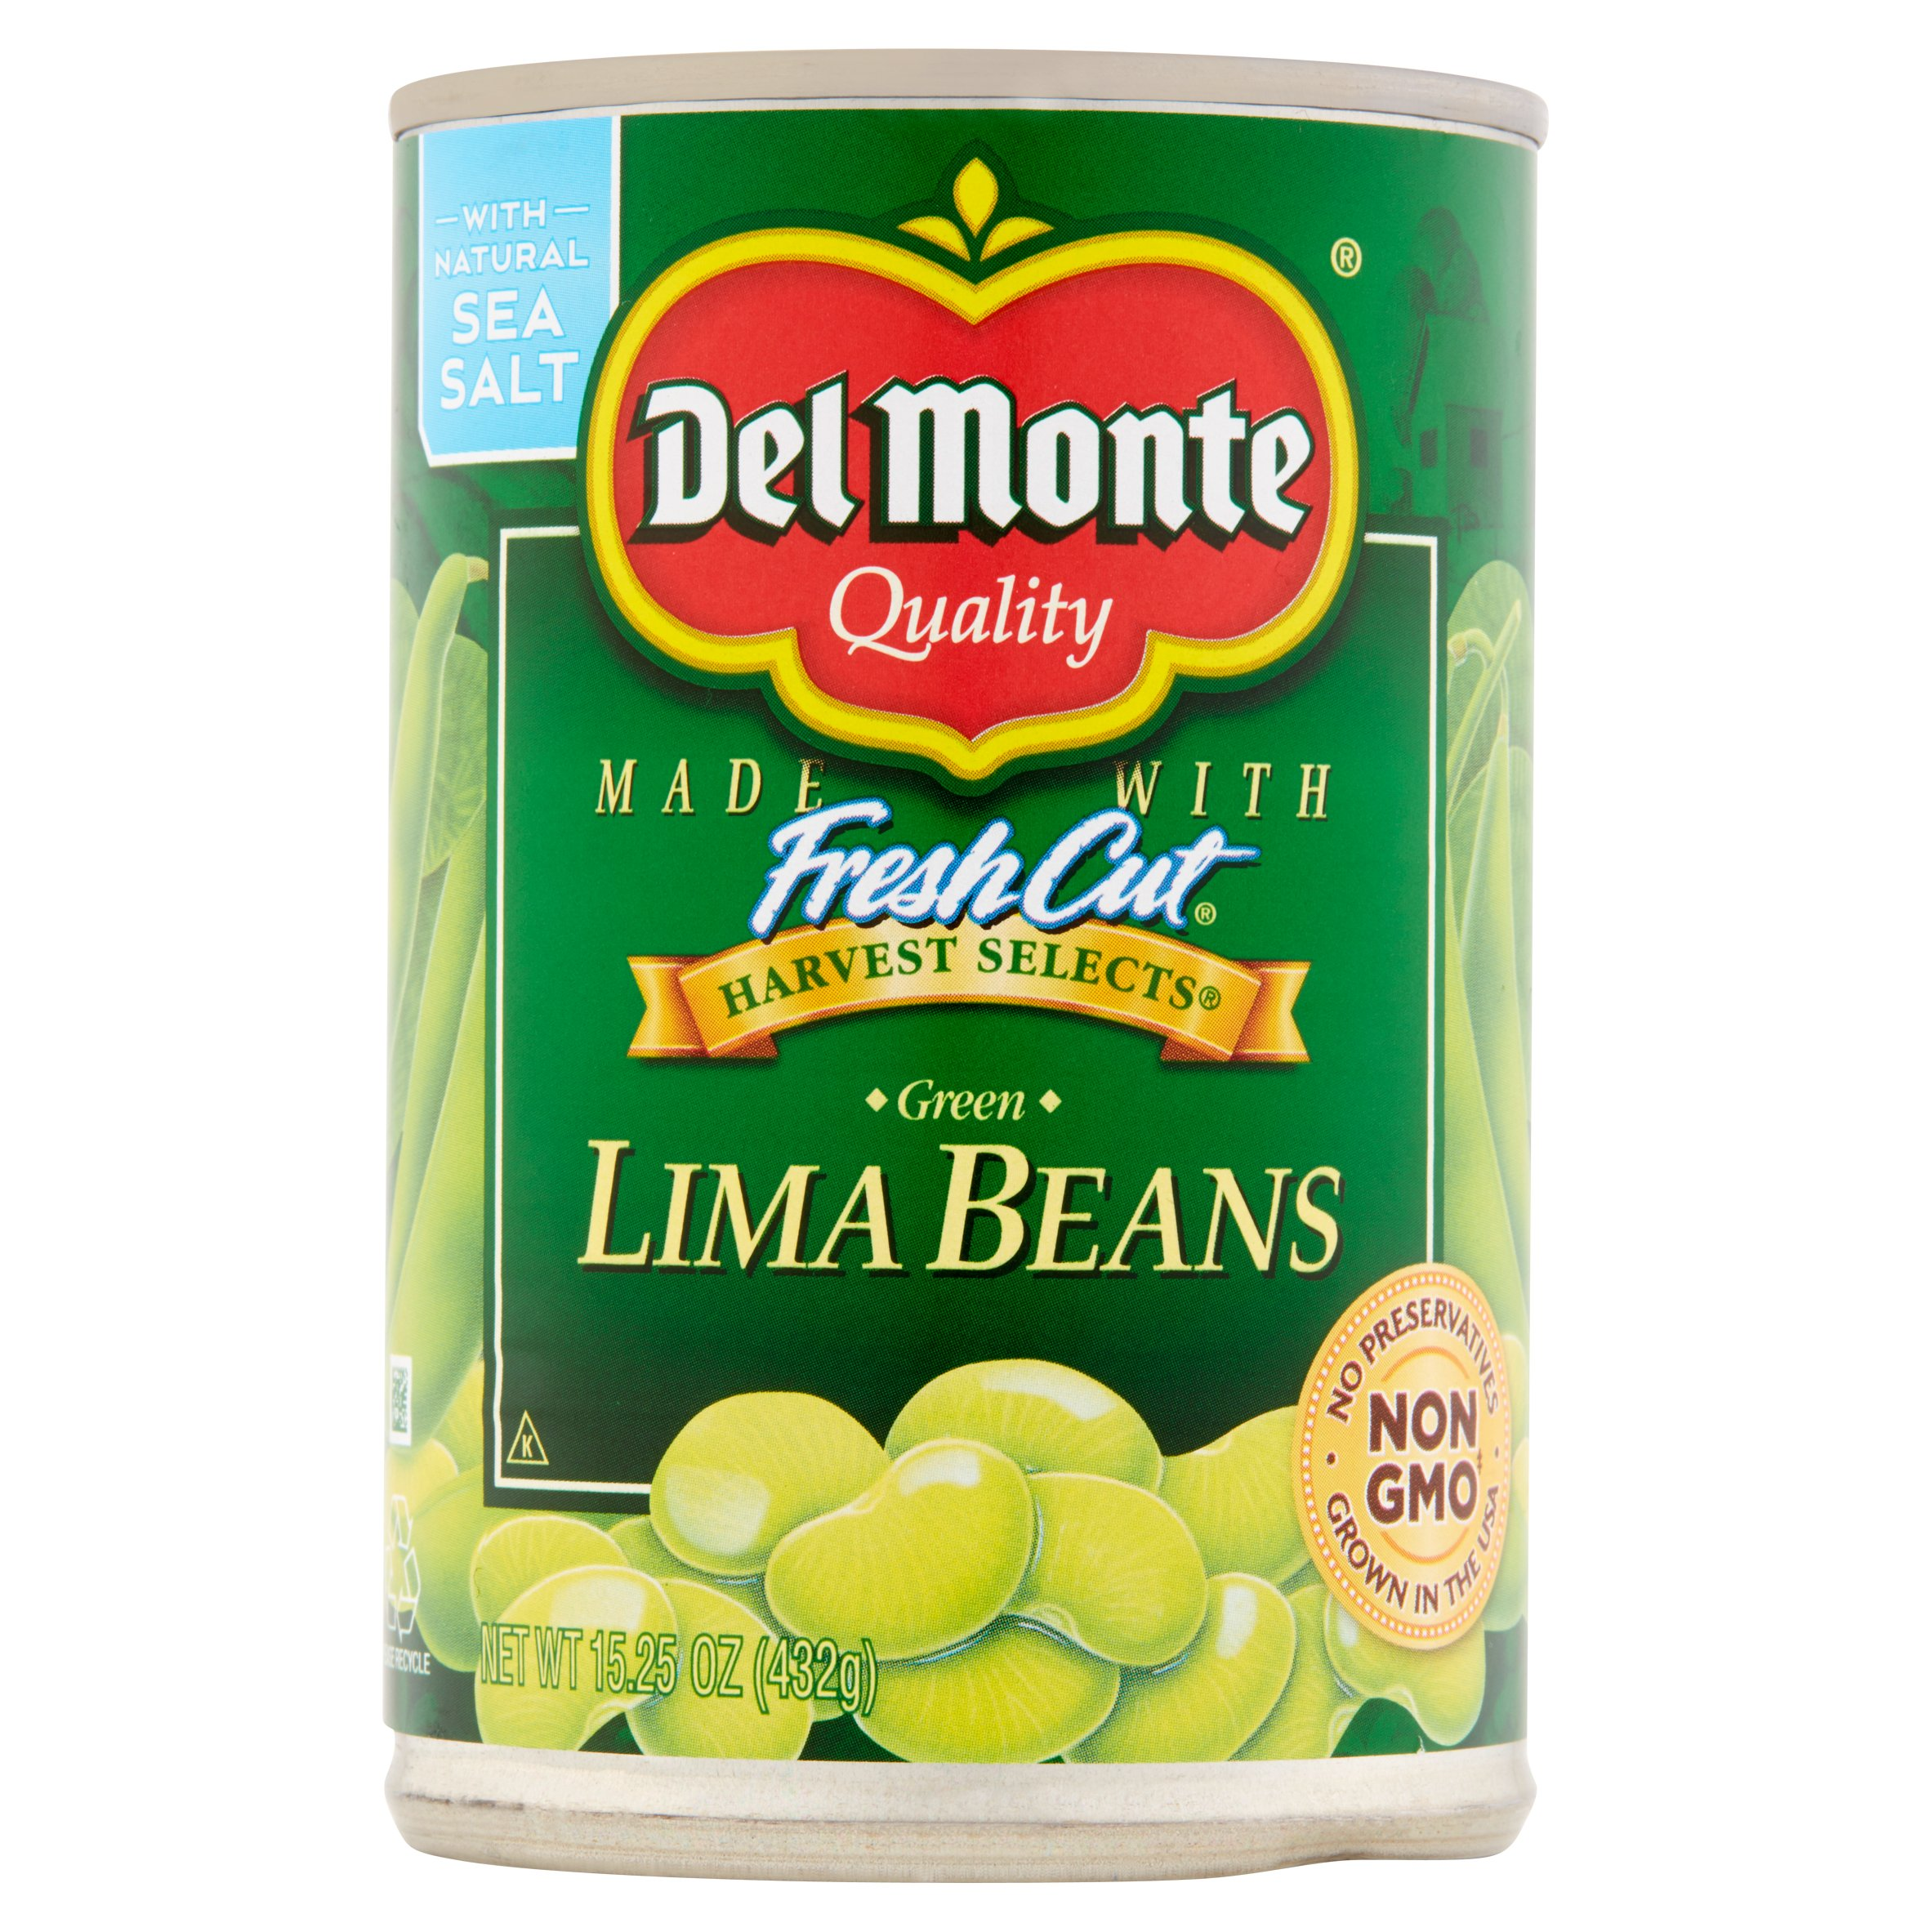 Del Monte Quality Harvest Selects Green Lima Beans, 15.25 Oz